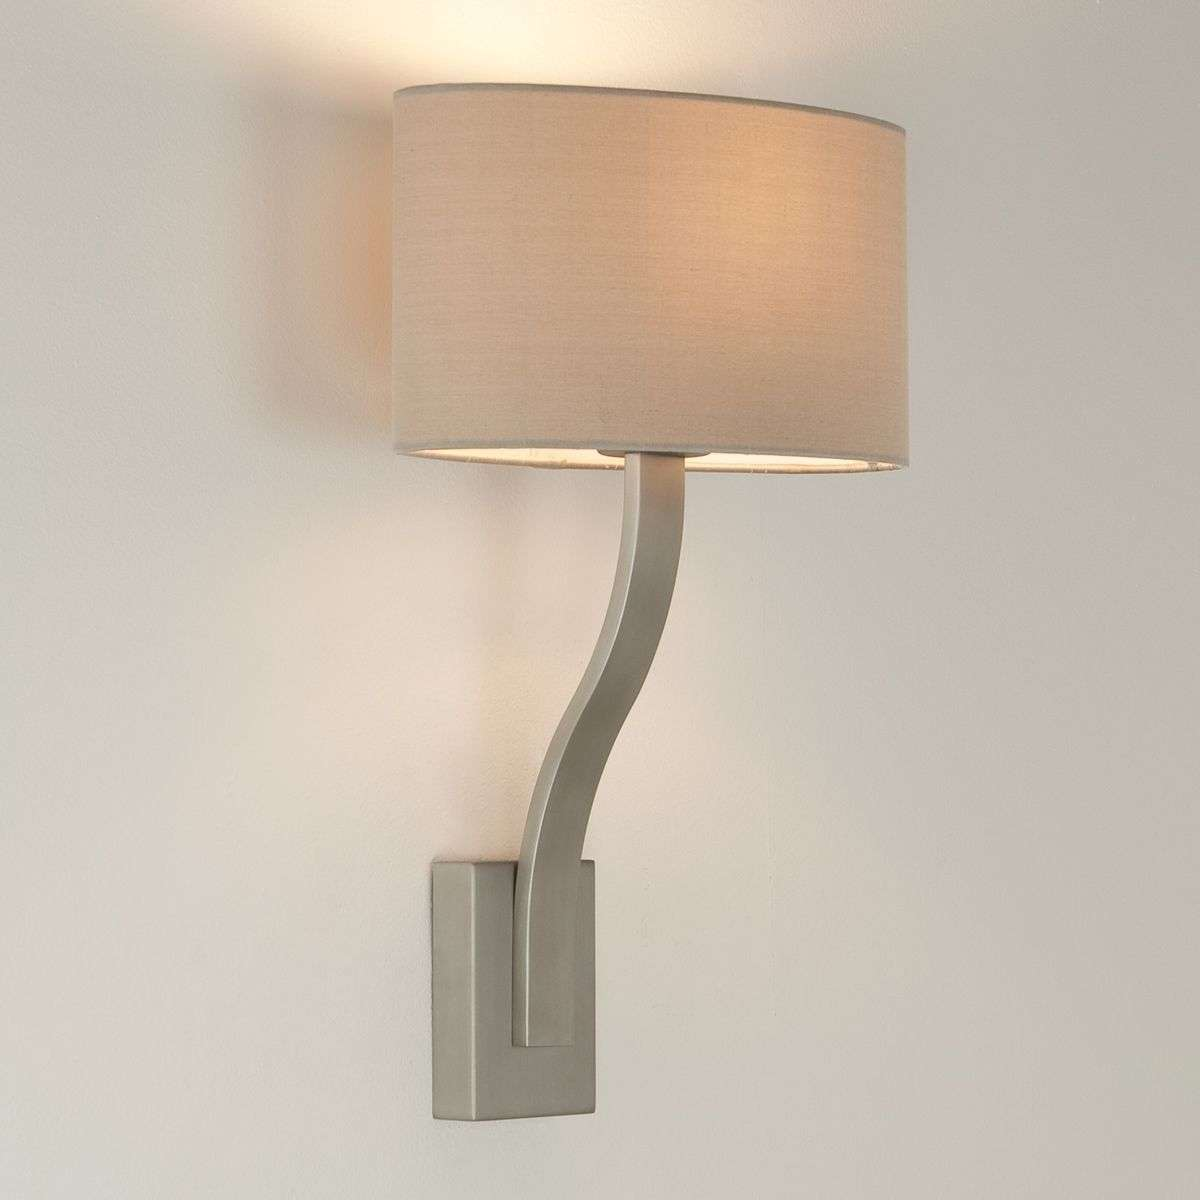 Sofia Wall Light Attractively Shaped Matte Nickel-1020430-31